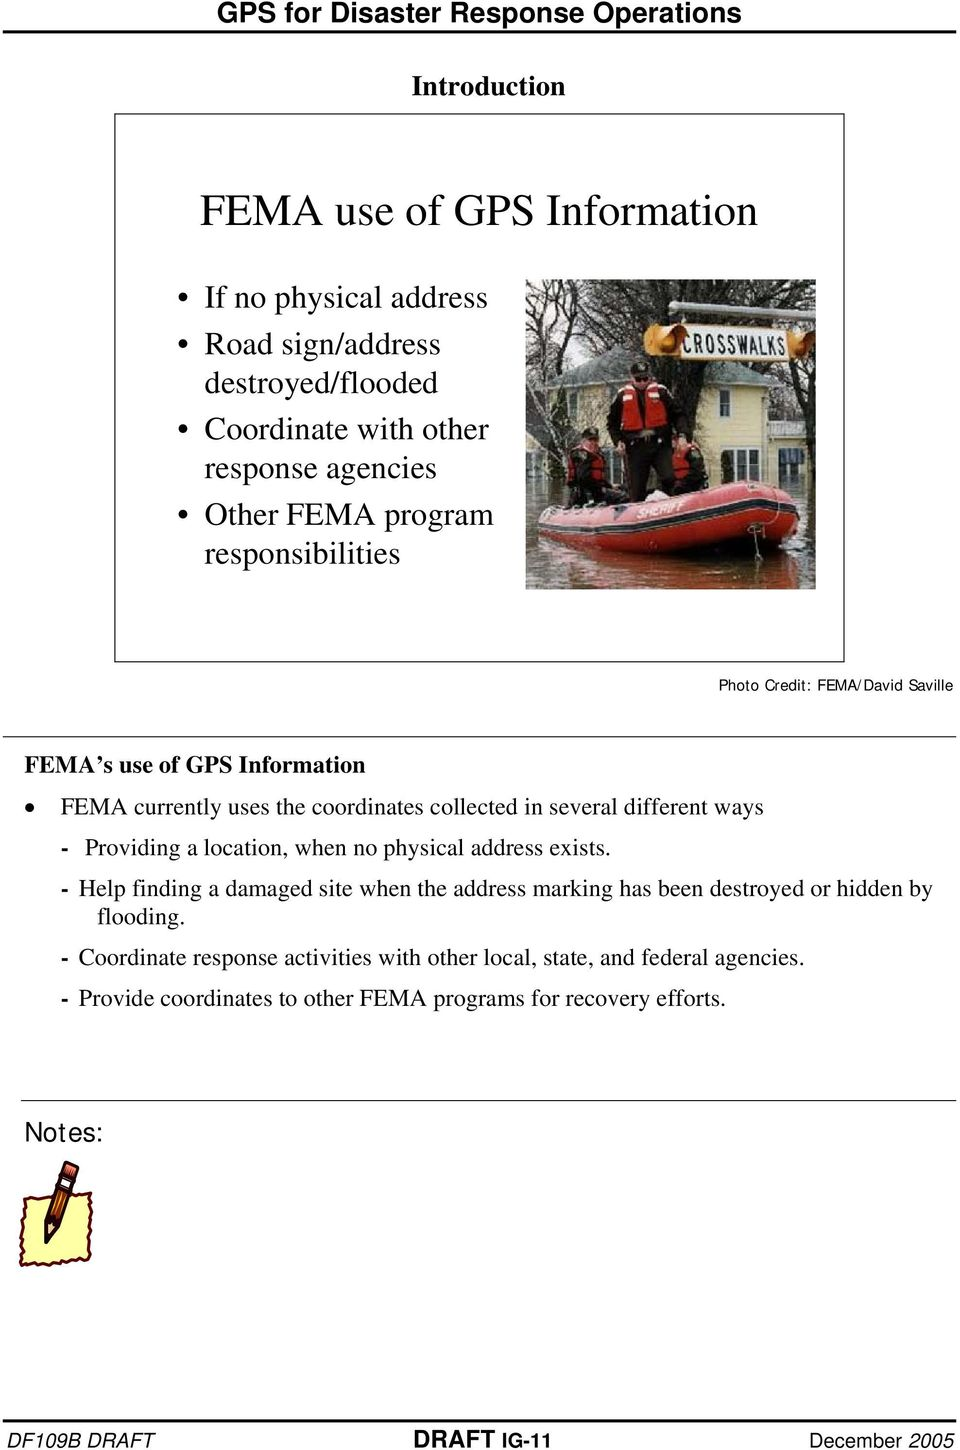 gps for disaster response operations pdf. Black Bedroom Furniture Sets. Home Design Ideas